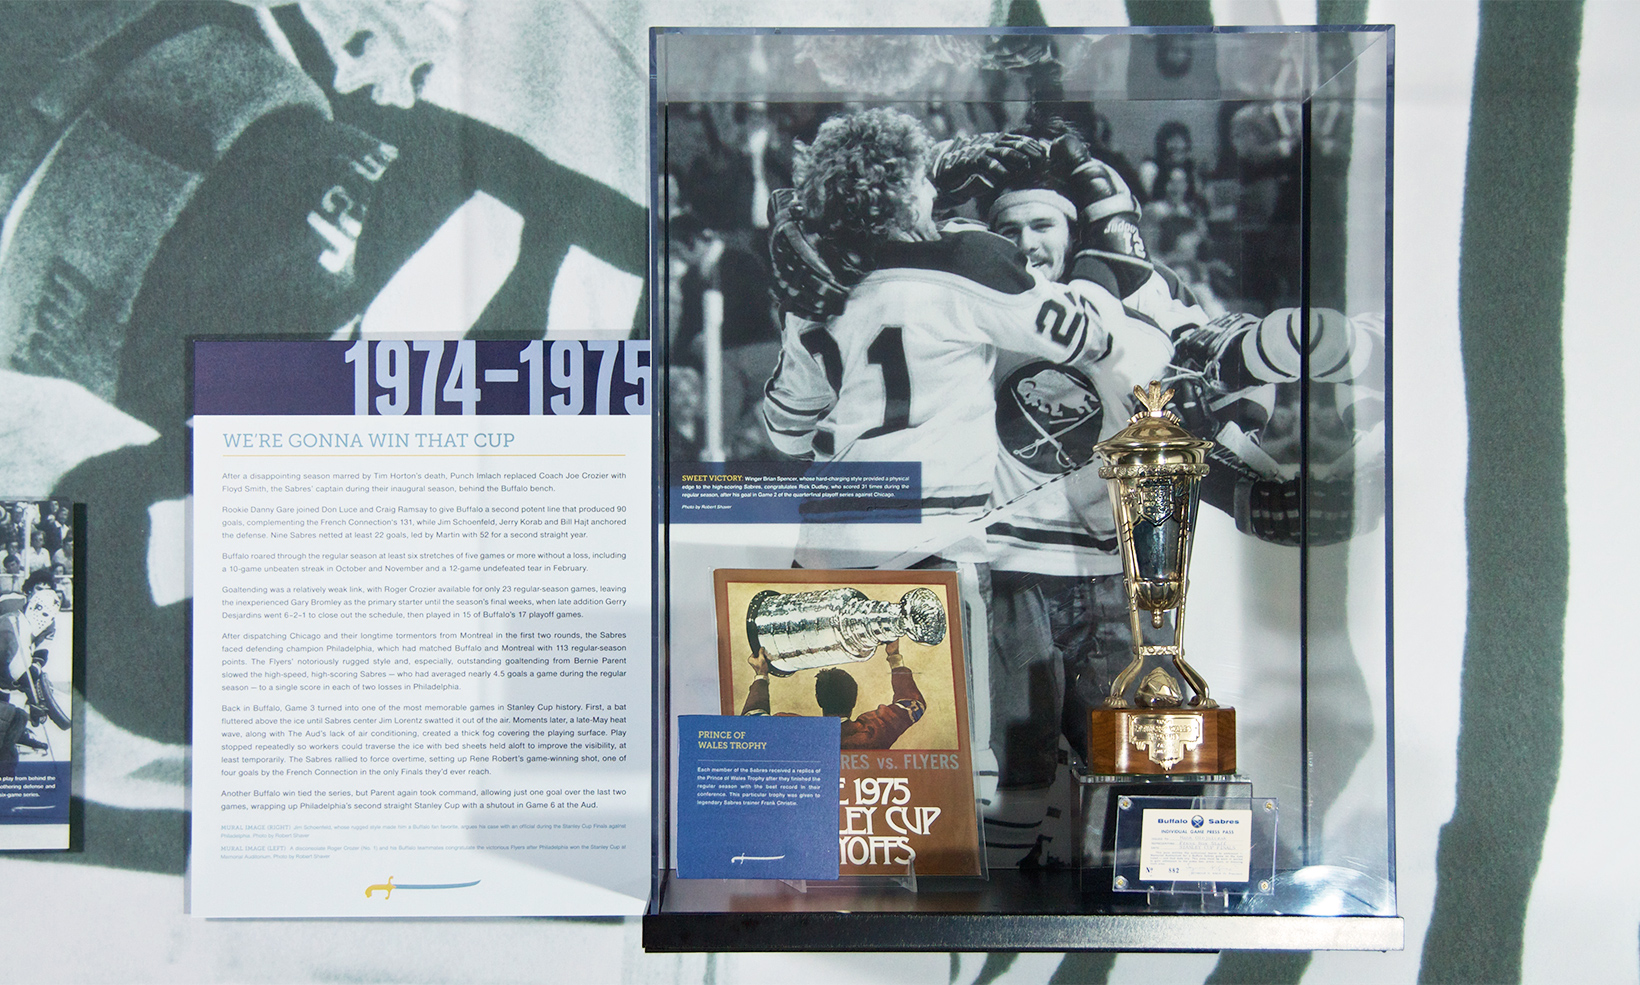 The Forging A Connection exhibit features wall mounted display cases full of first year Buffalo Sabres artifacts